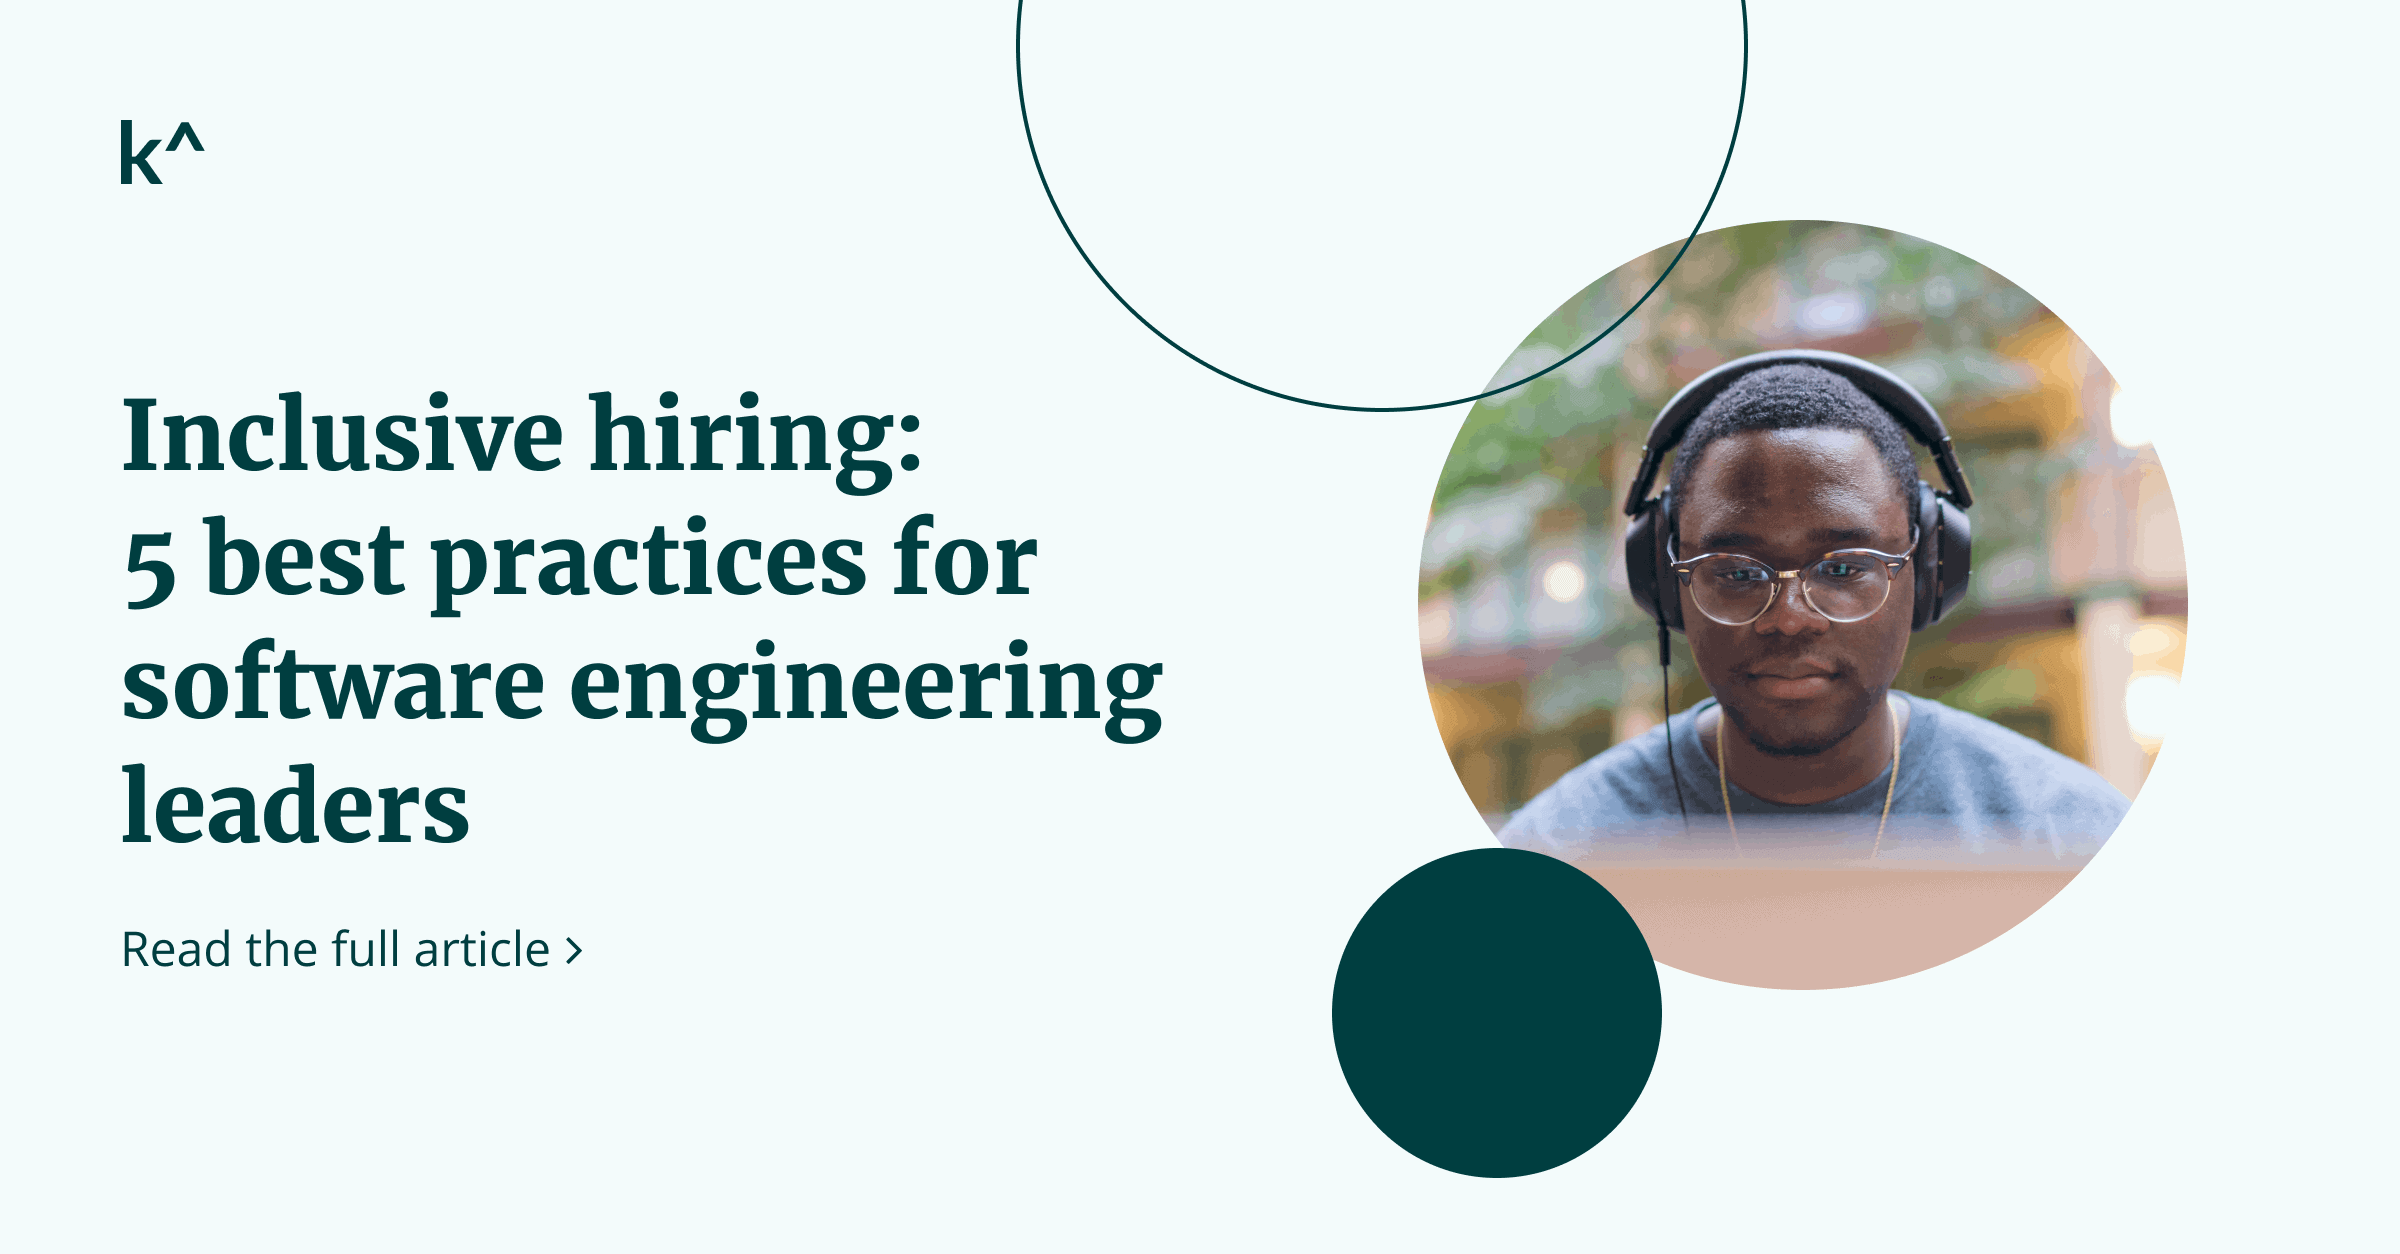 Inclusive hiring: 5 best practices for software engineering leaders